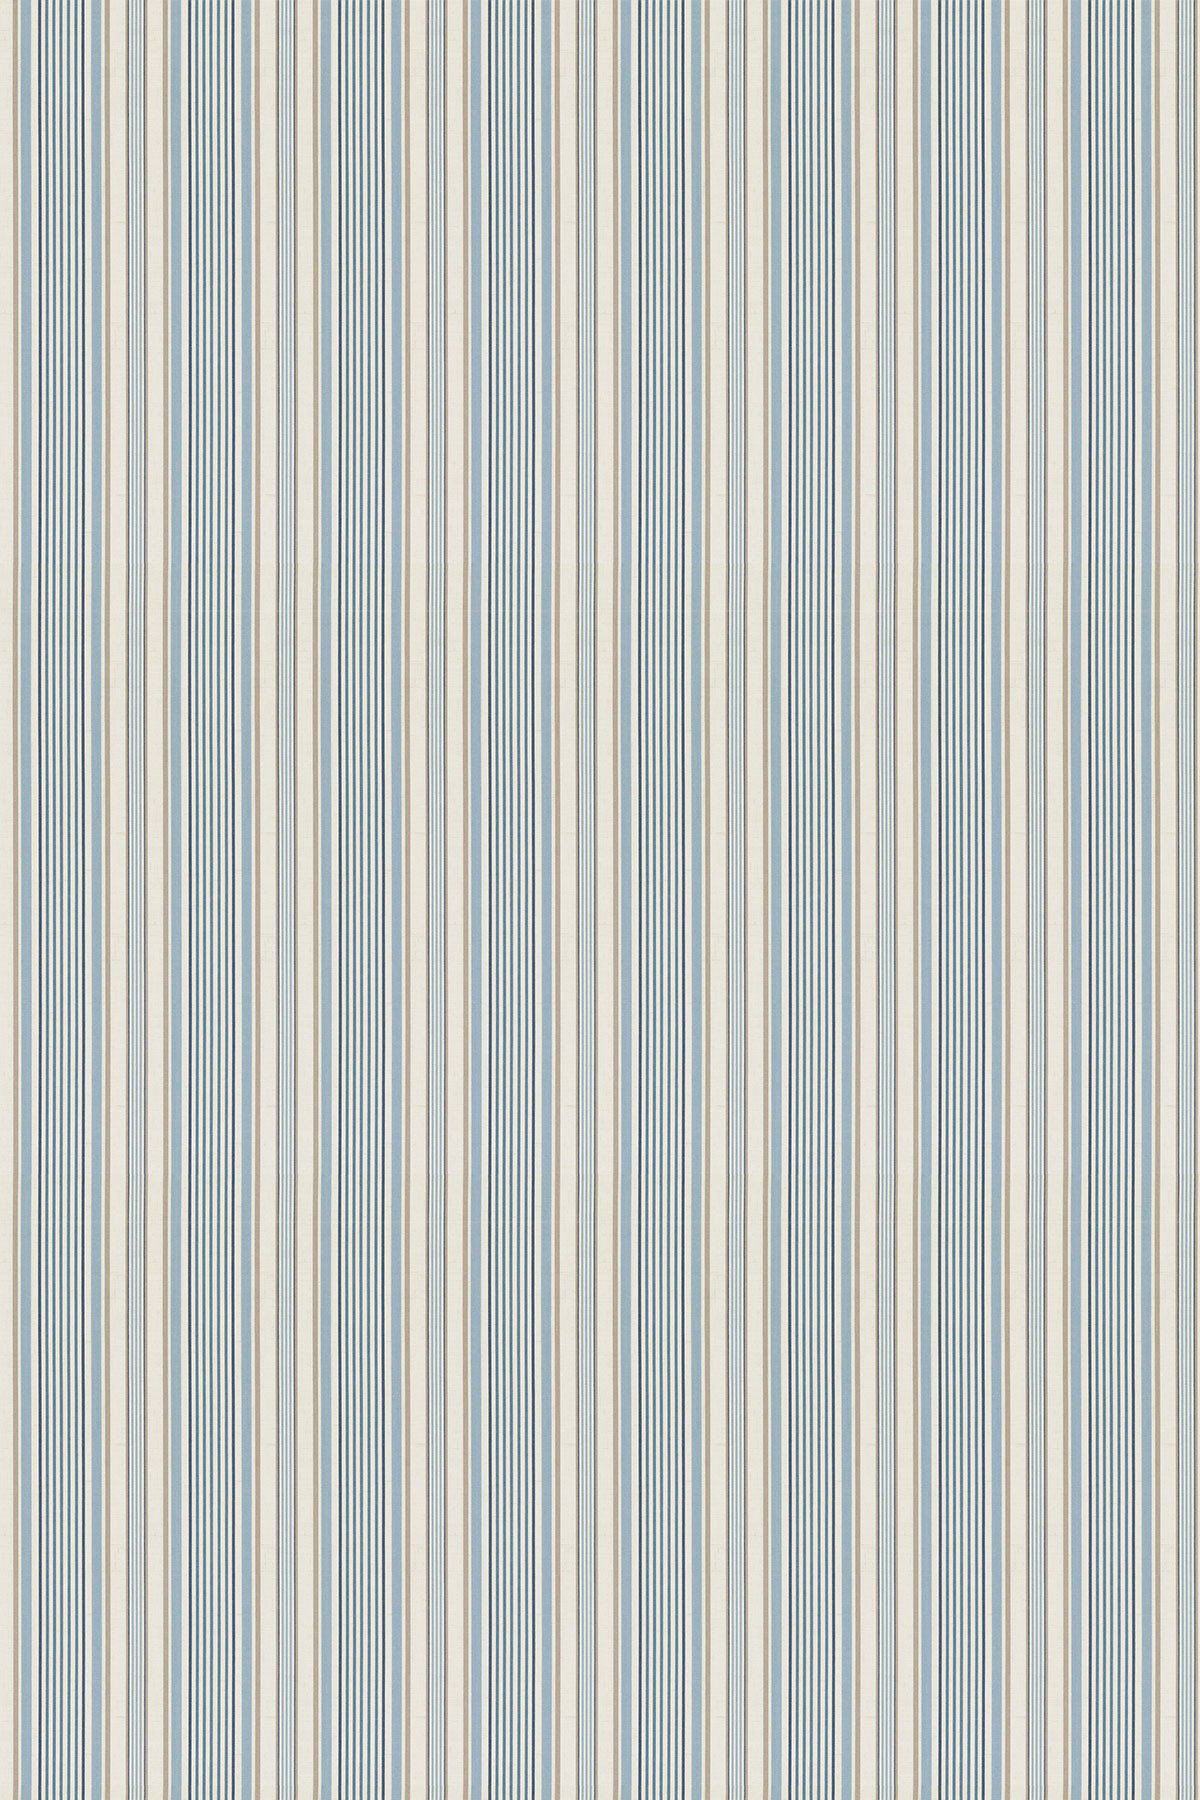 Image of Studio G Fabric Belle Chambray, F0620/01